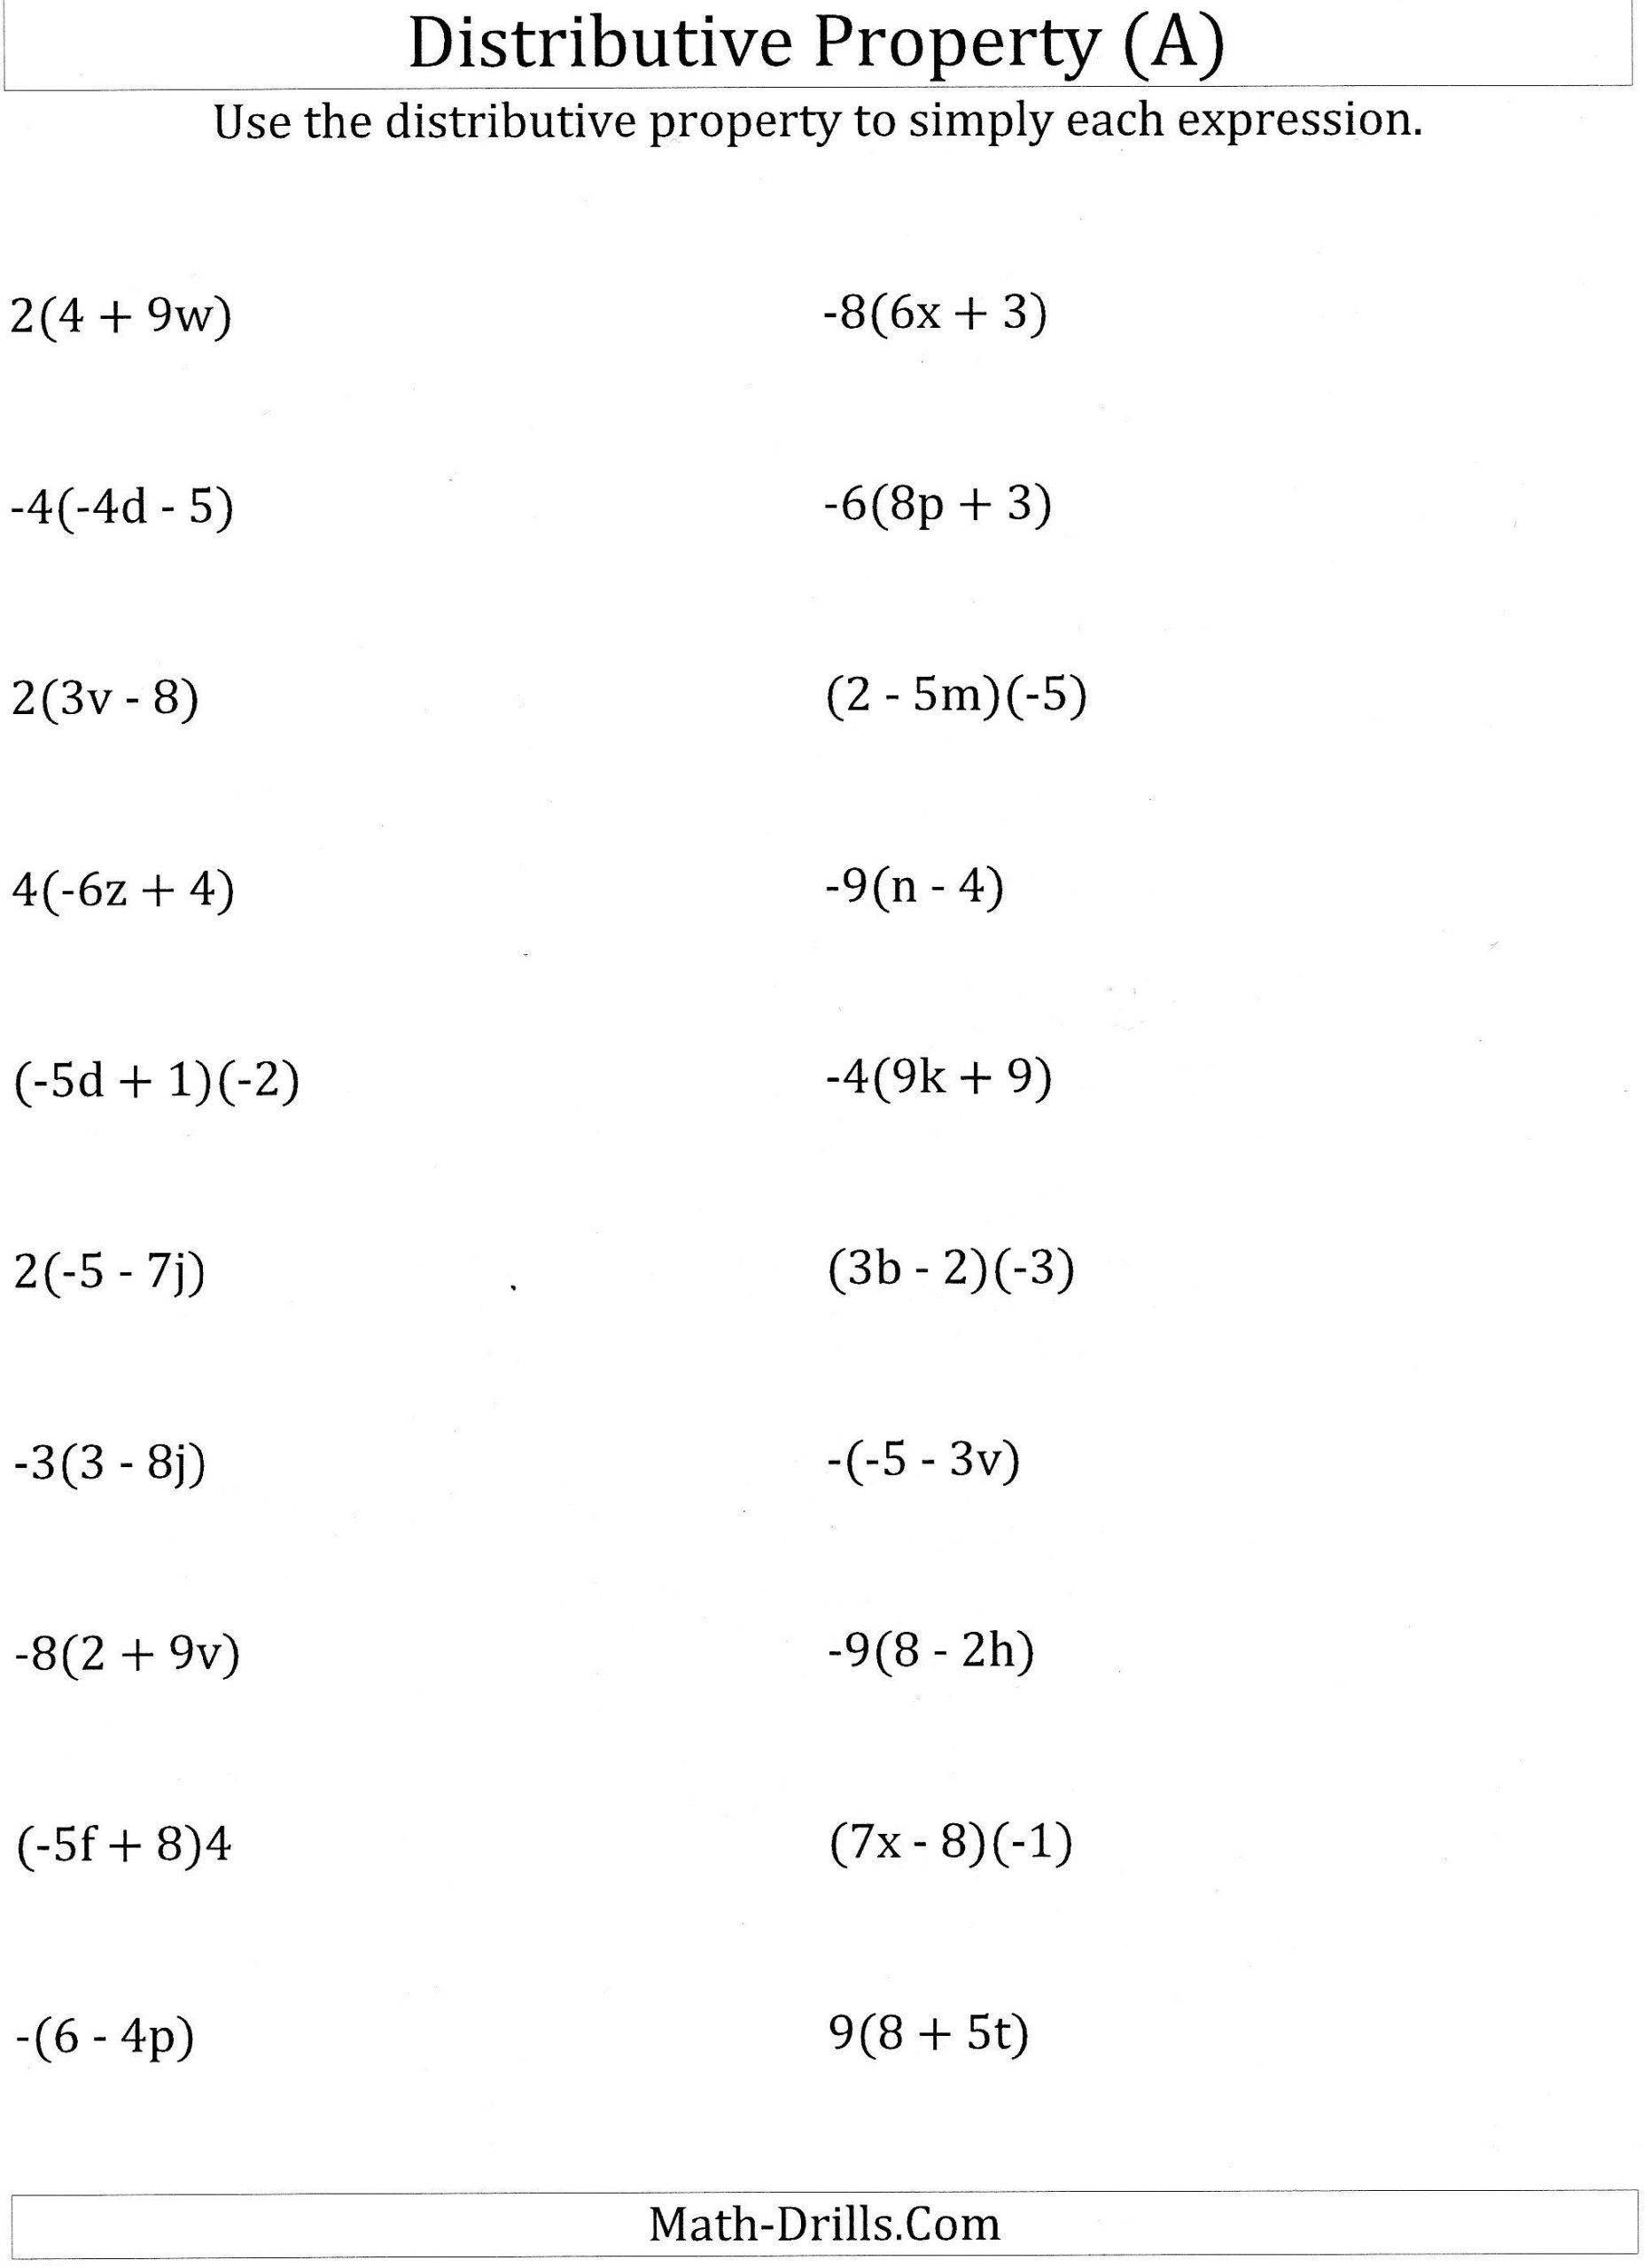 Distributive Property Worksheets 7th Grade In